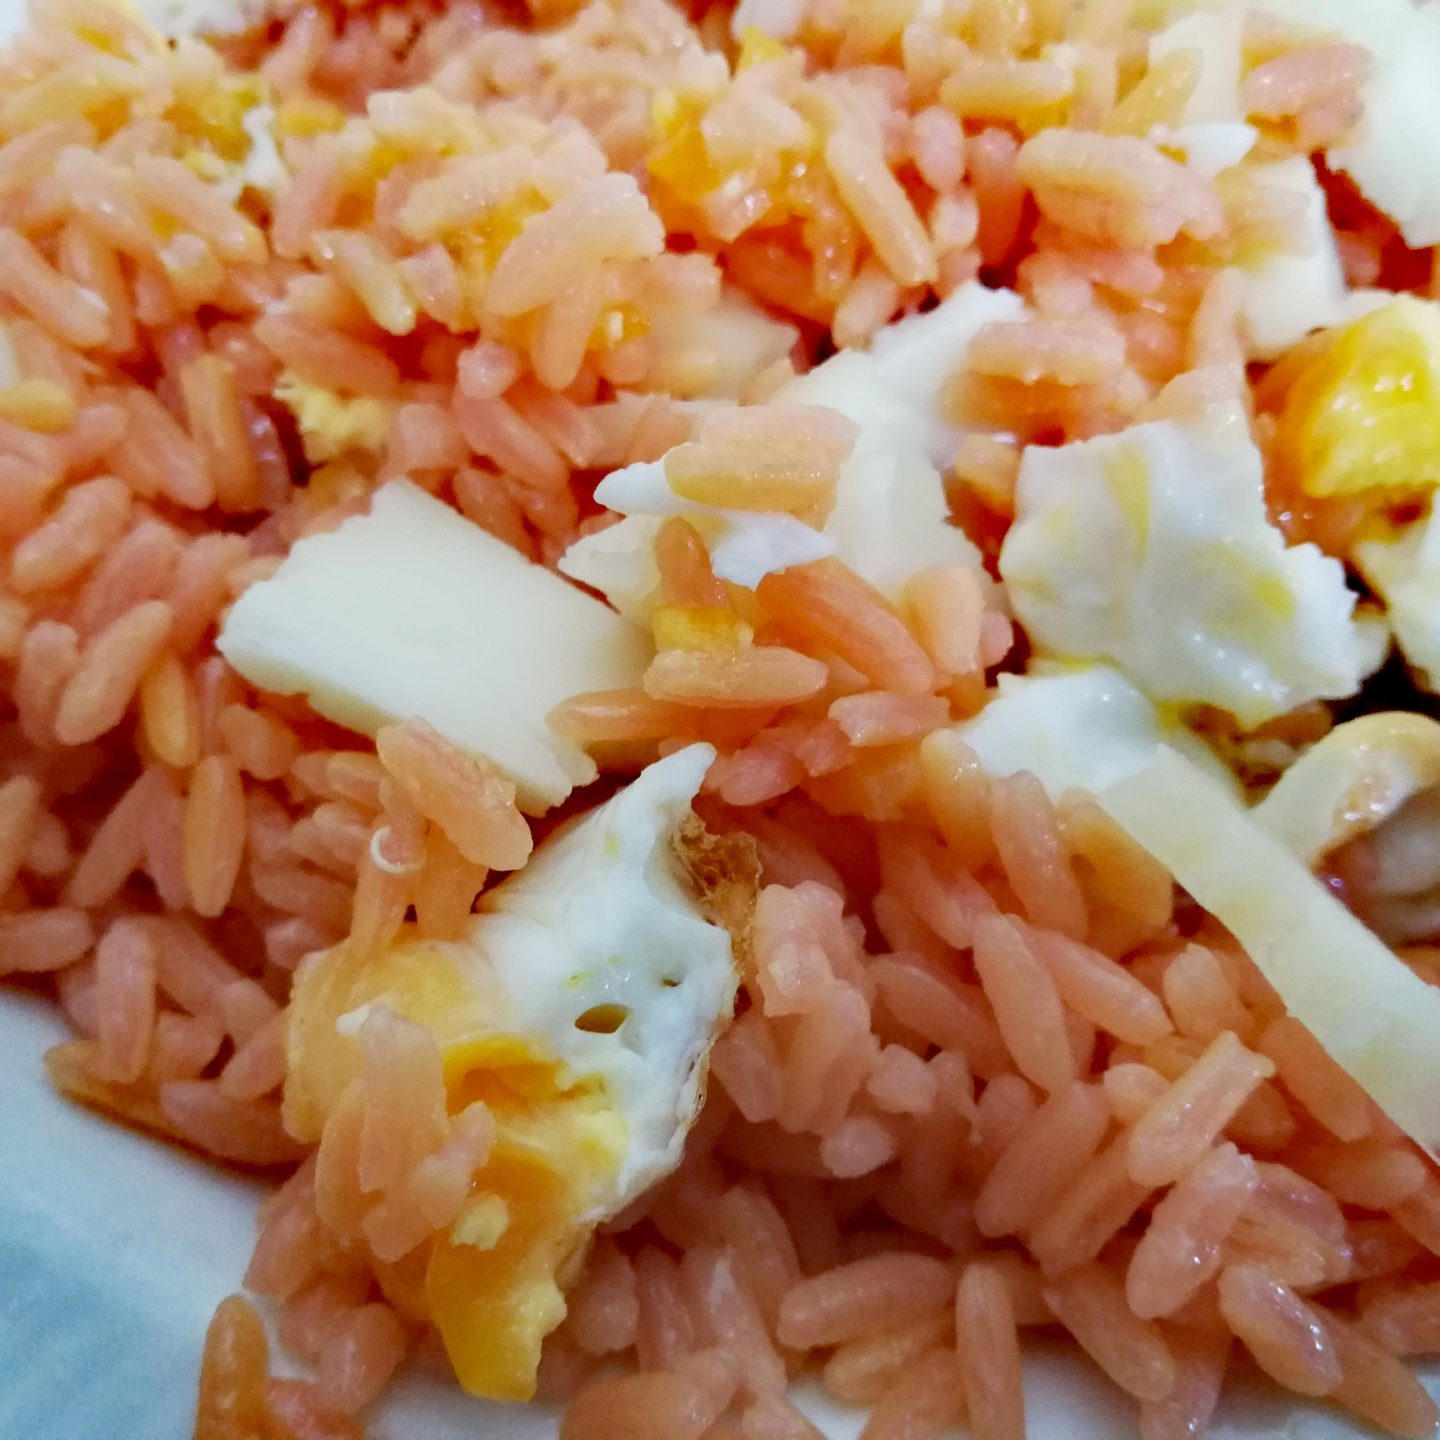 Arroz con lo que pilles